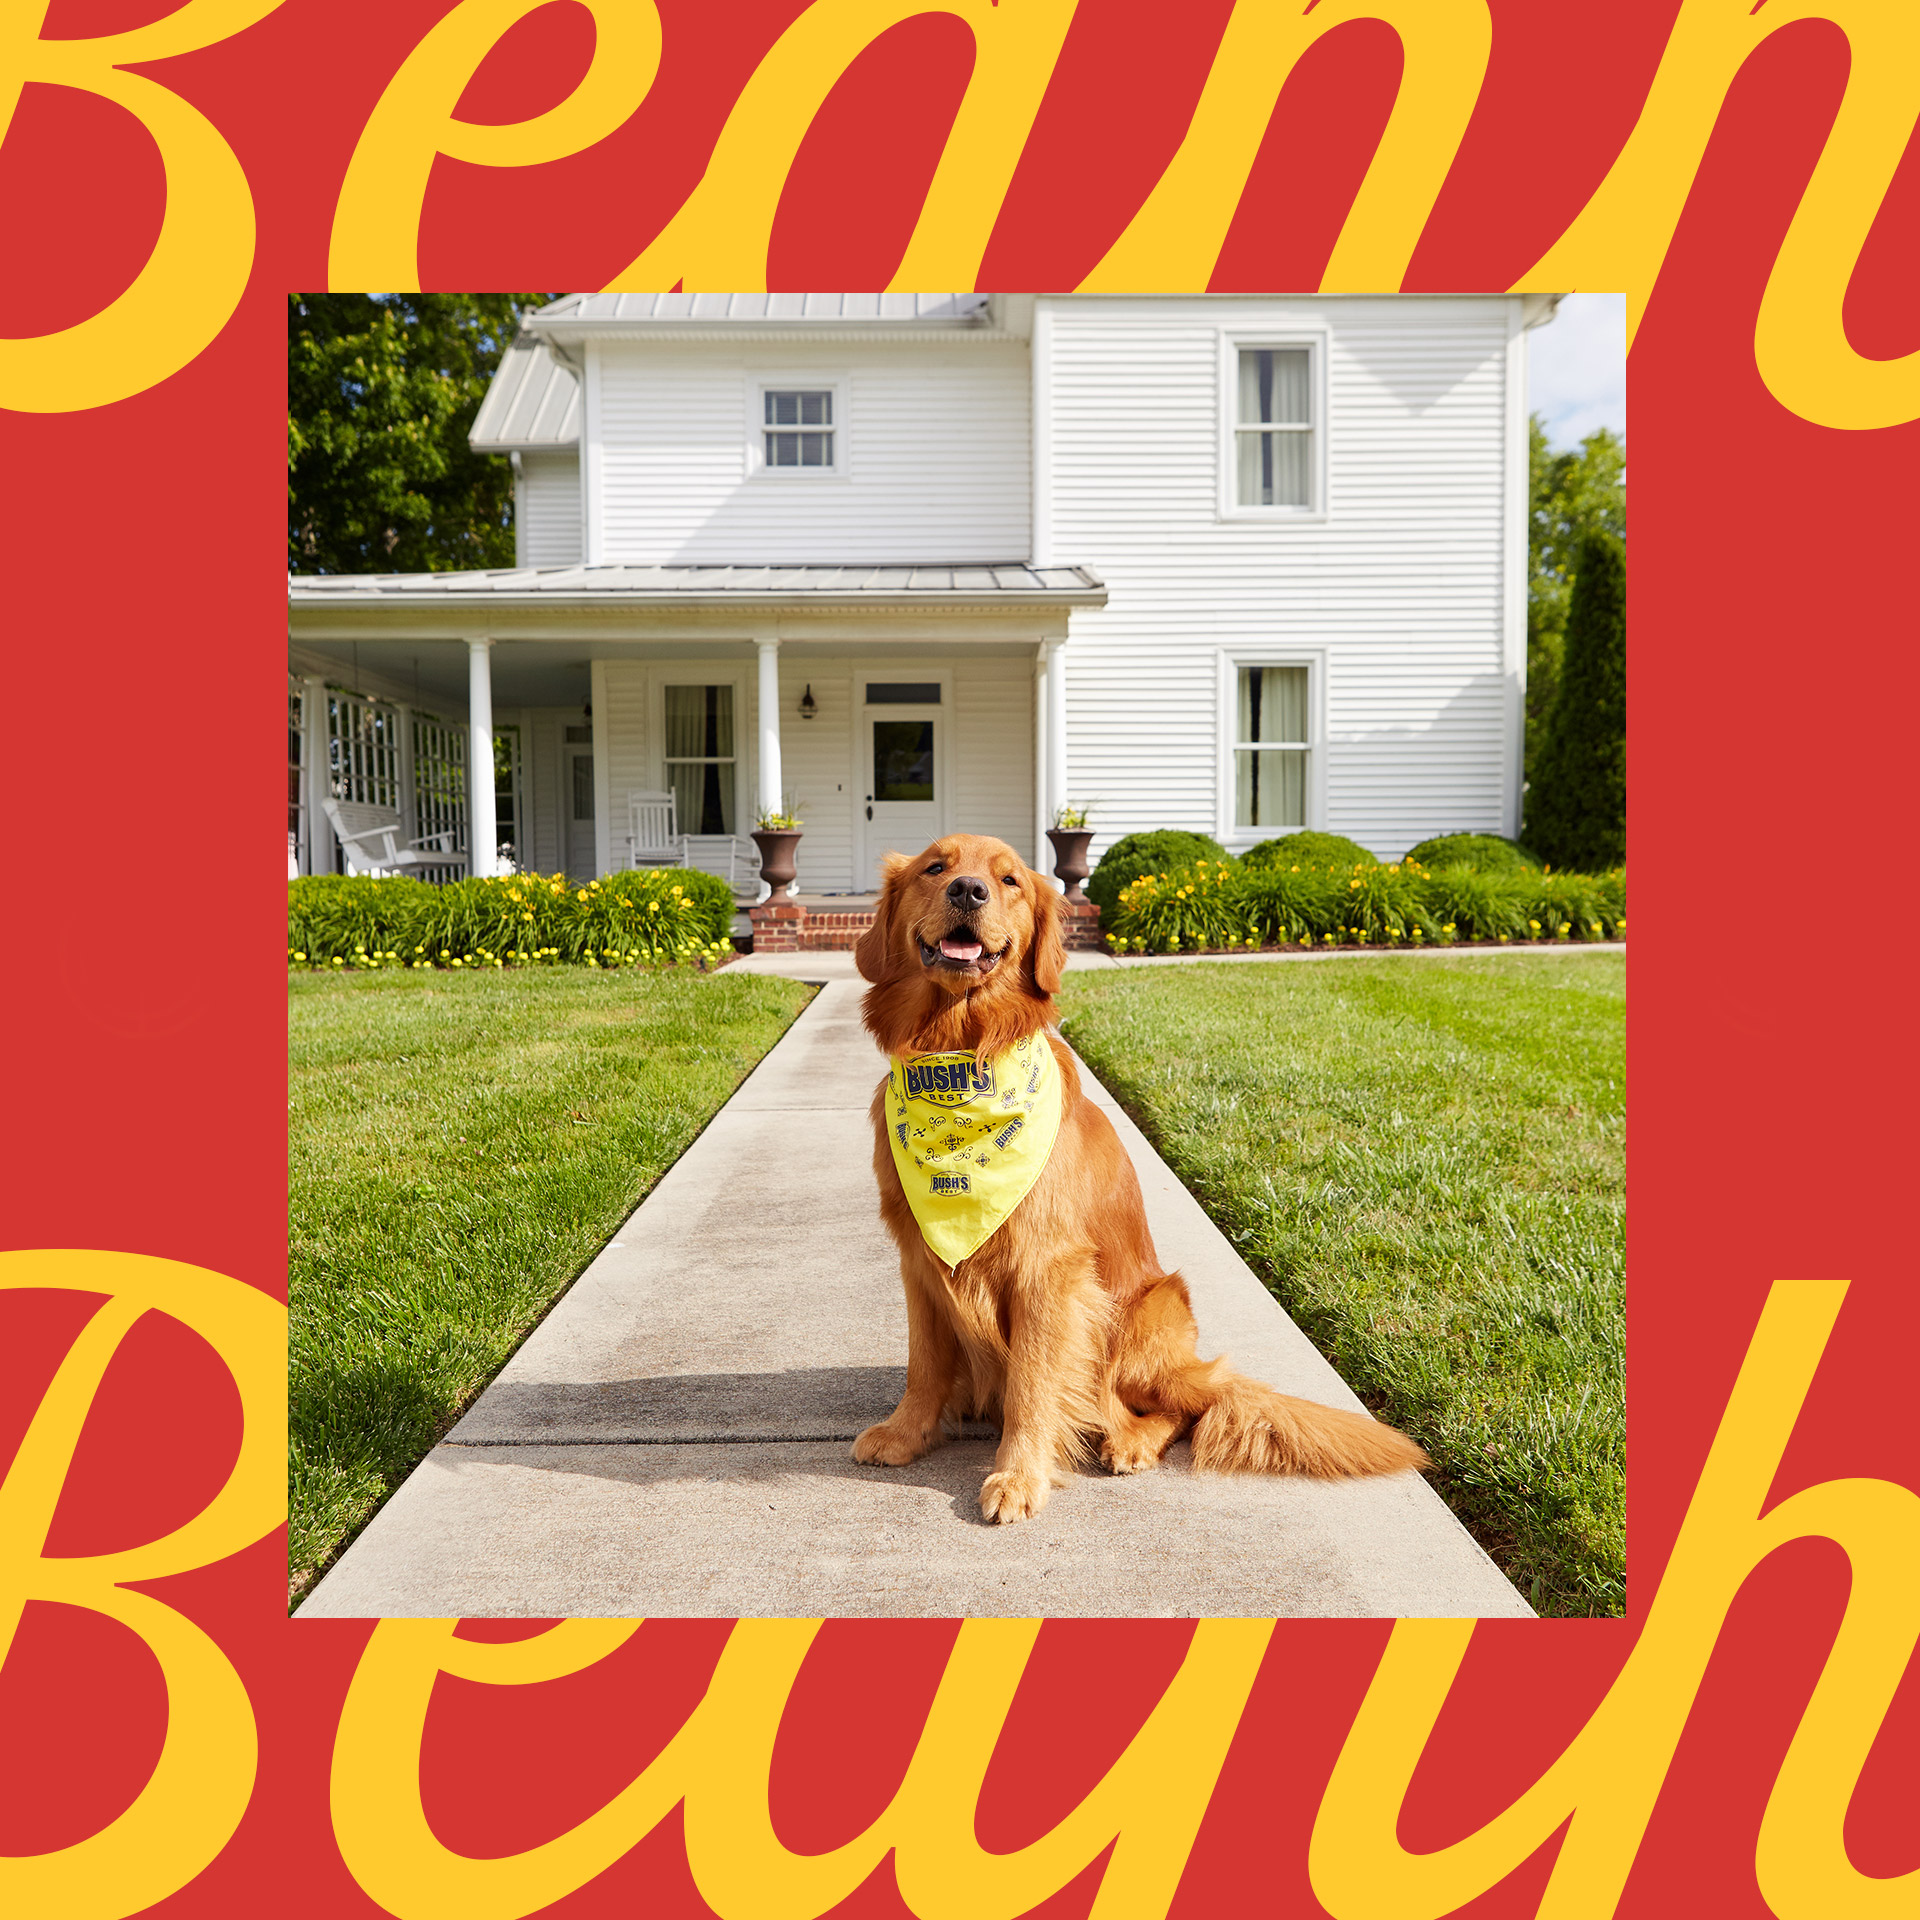 Bush's Beans mascot dog Duke standing in front of a white house with front porch wearing yellow bandana